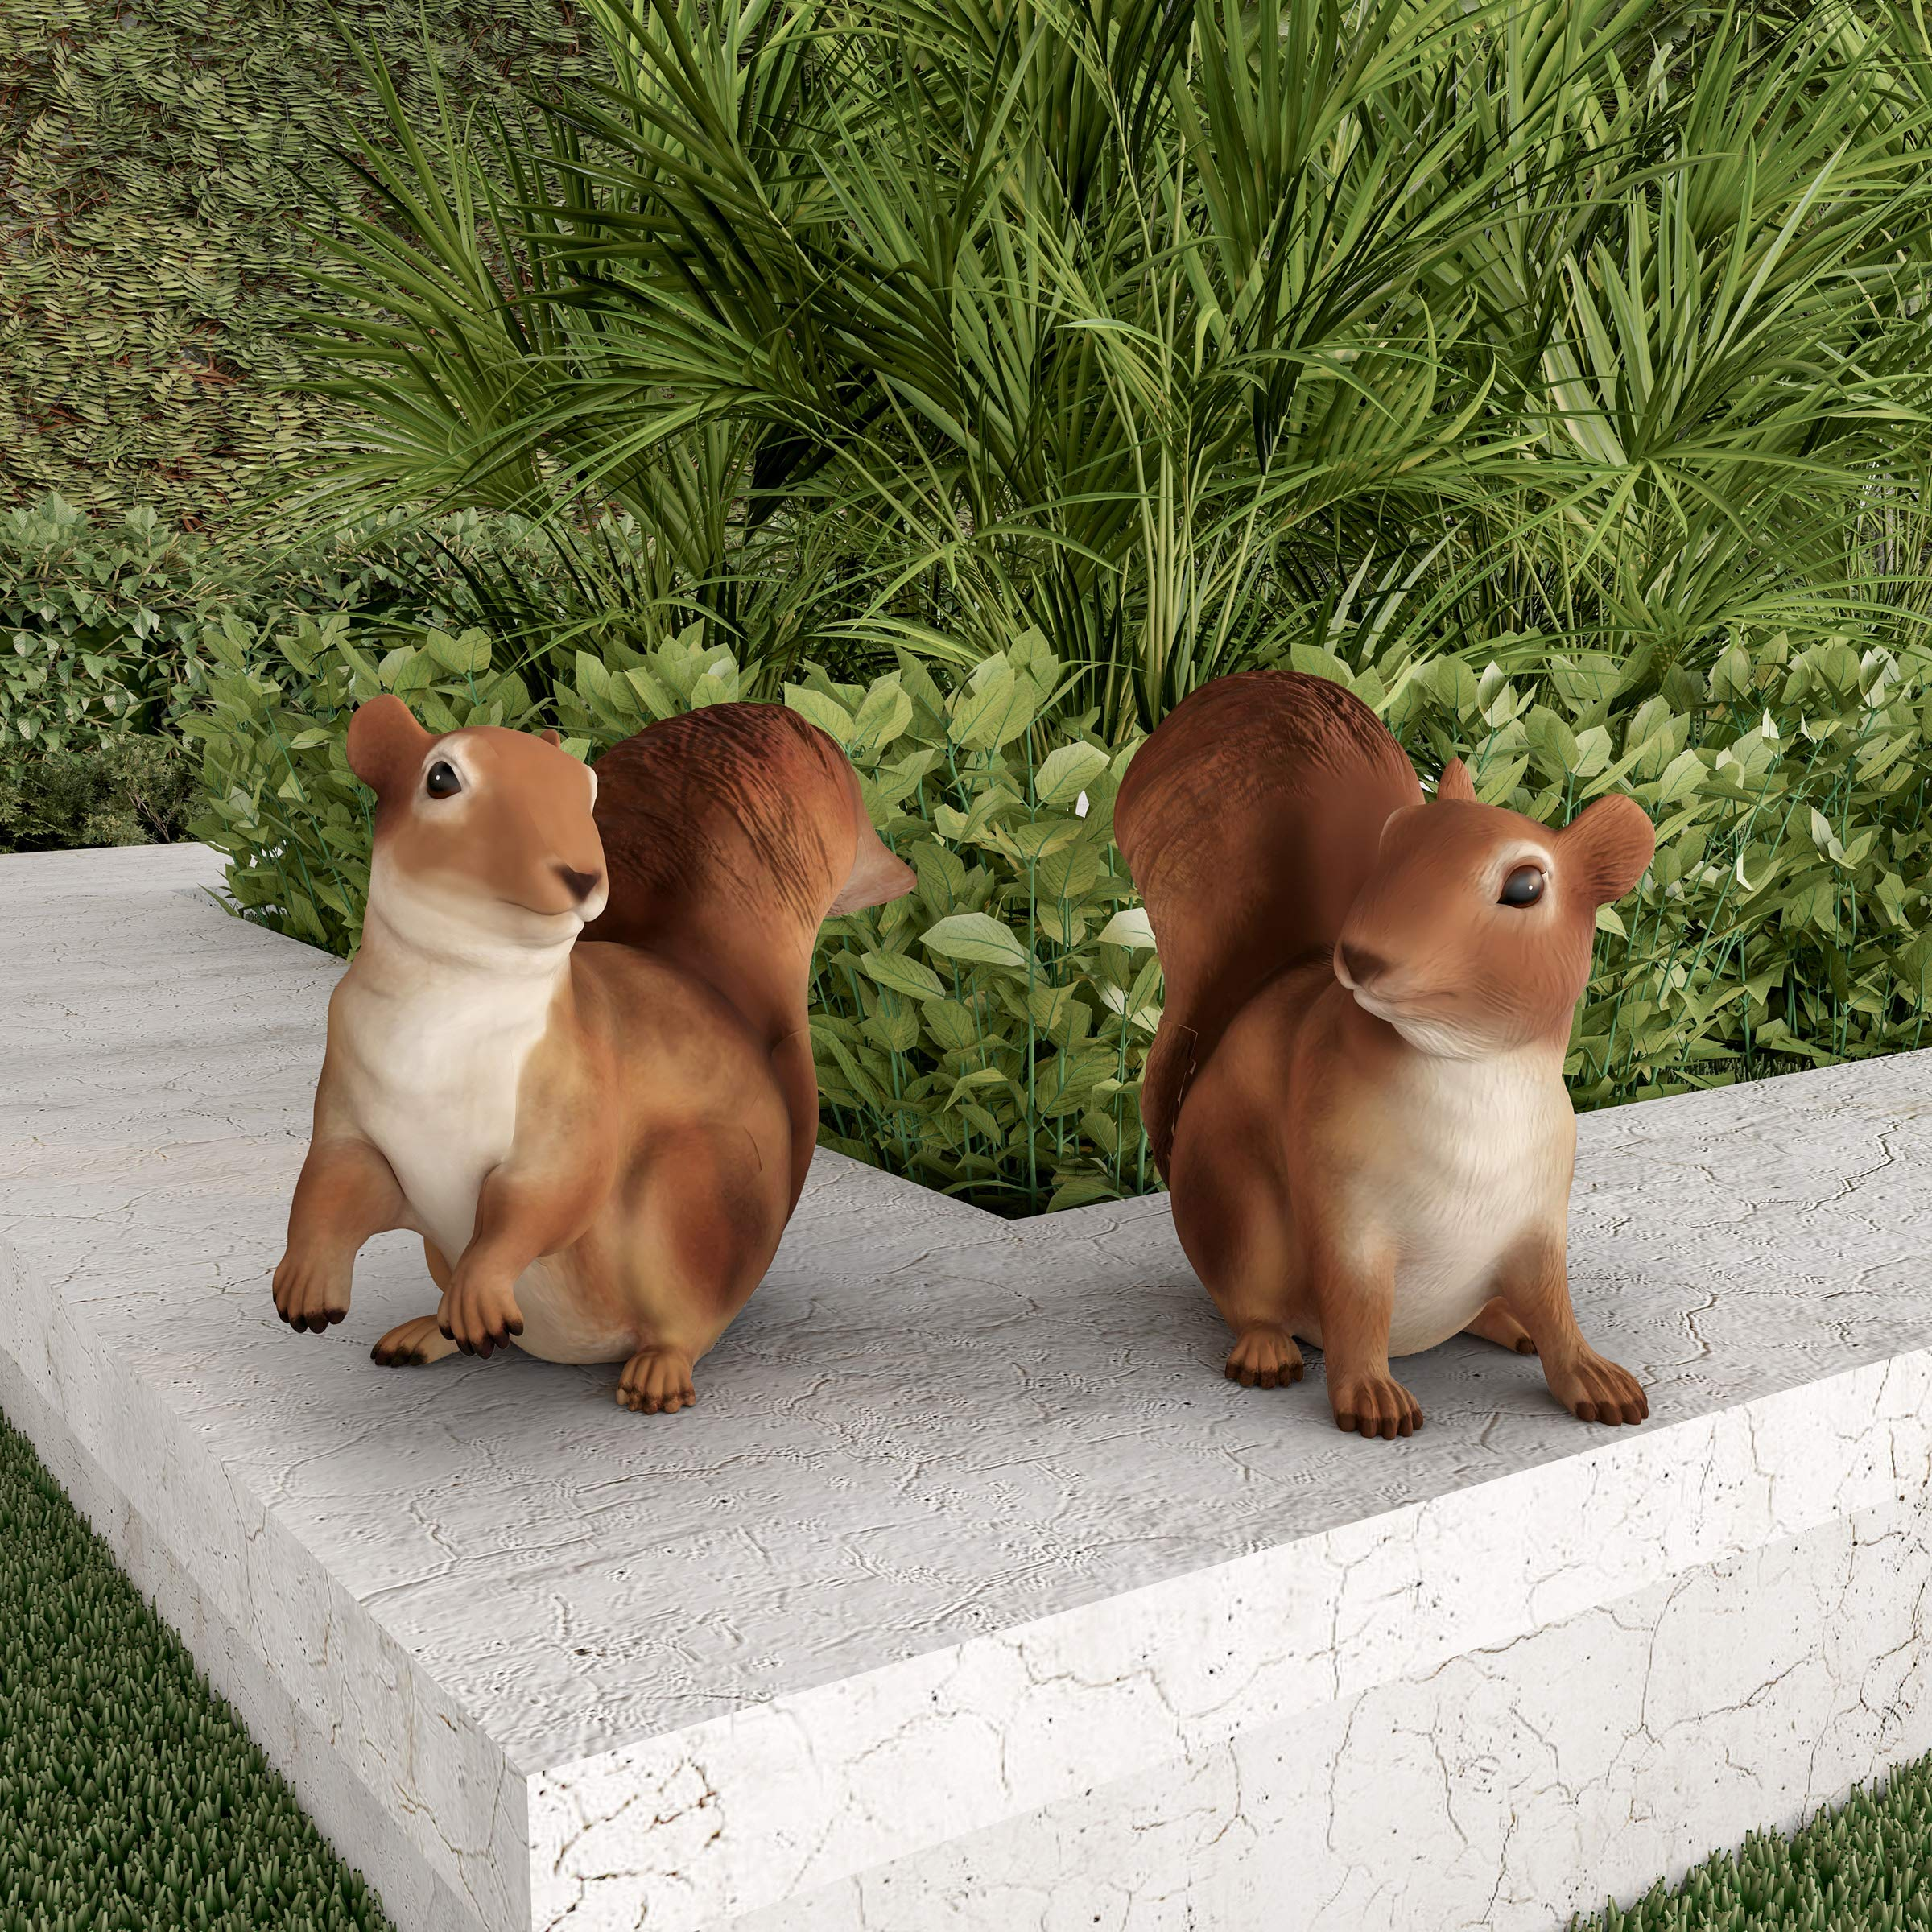 Pure Garden 50-LG1098 Squirrel Statues-Resin Animal Figurines for Outdoor Lawn Decor for Flower Beds, Fairy Gardens, Backyards and More (Set of 2)